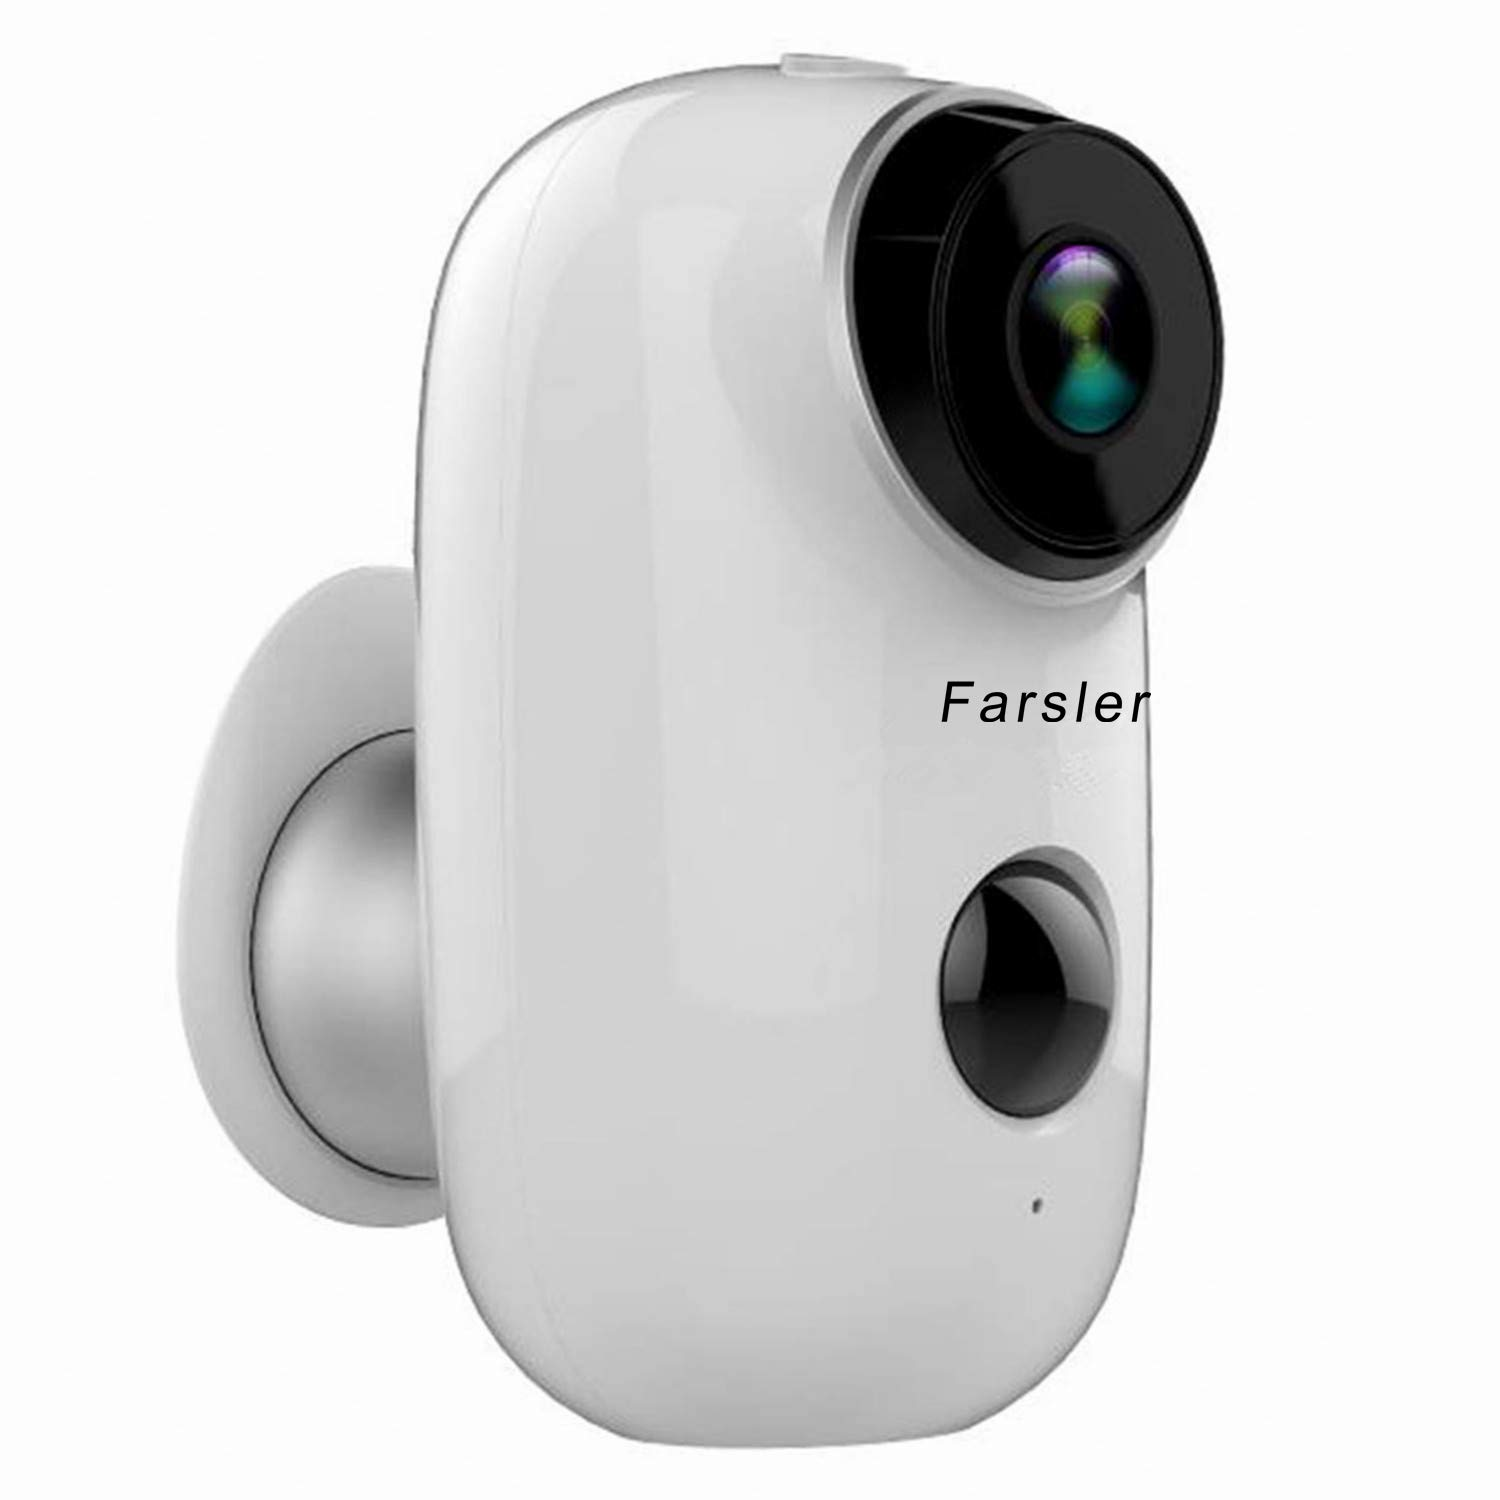 Farsler A3 Rechargeable Battery-Powered Camera Indoor/Outdoor Wireless Security Camera 1080p HD Wire-Free 2-Way Audio Night Vision Alarm Alert & PIR Motion Sensor w/Built-in SD Slot,Black